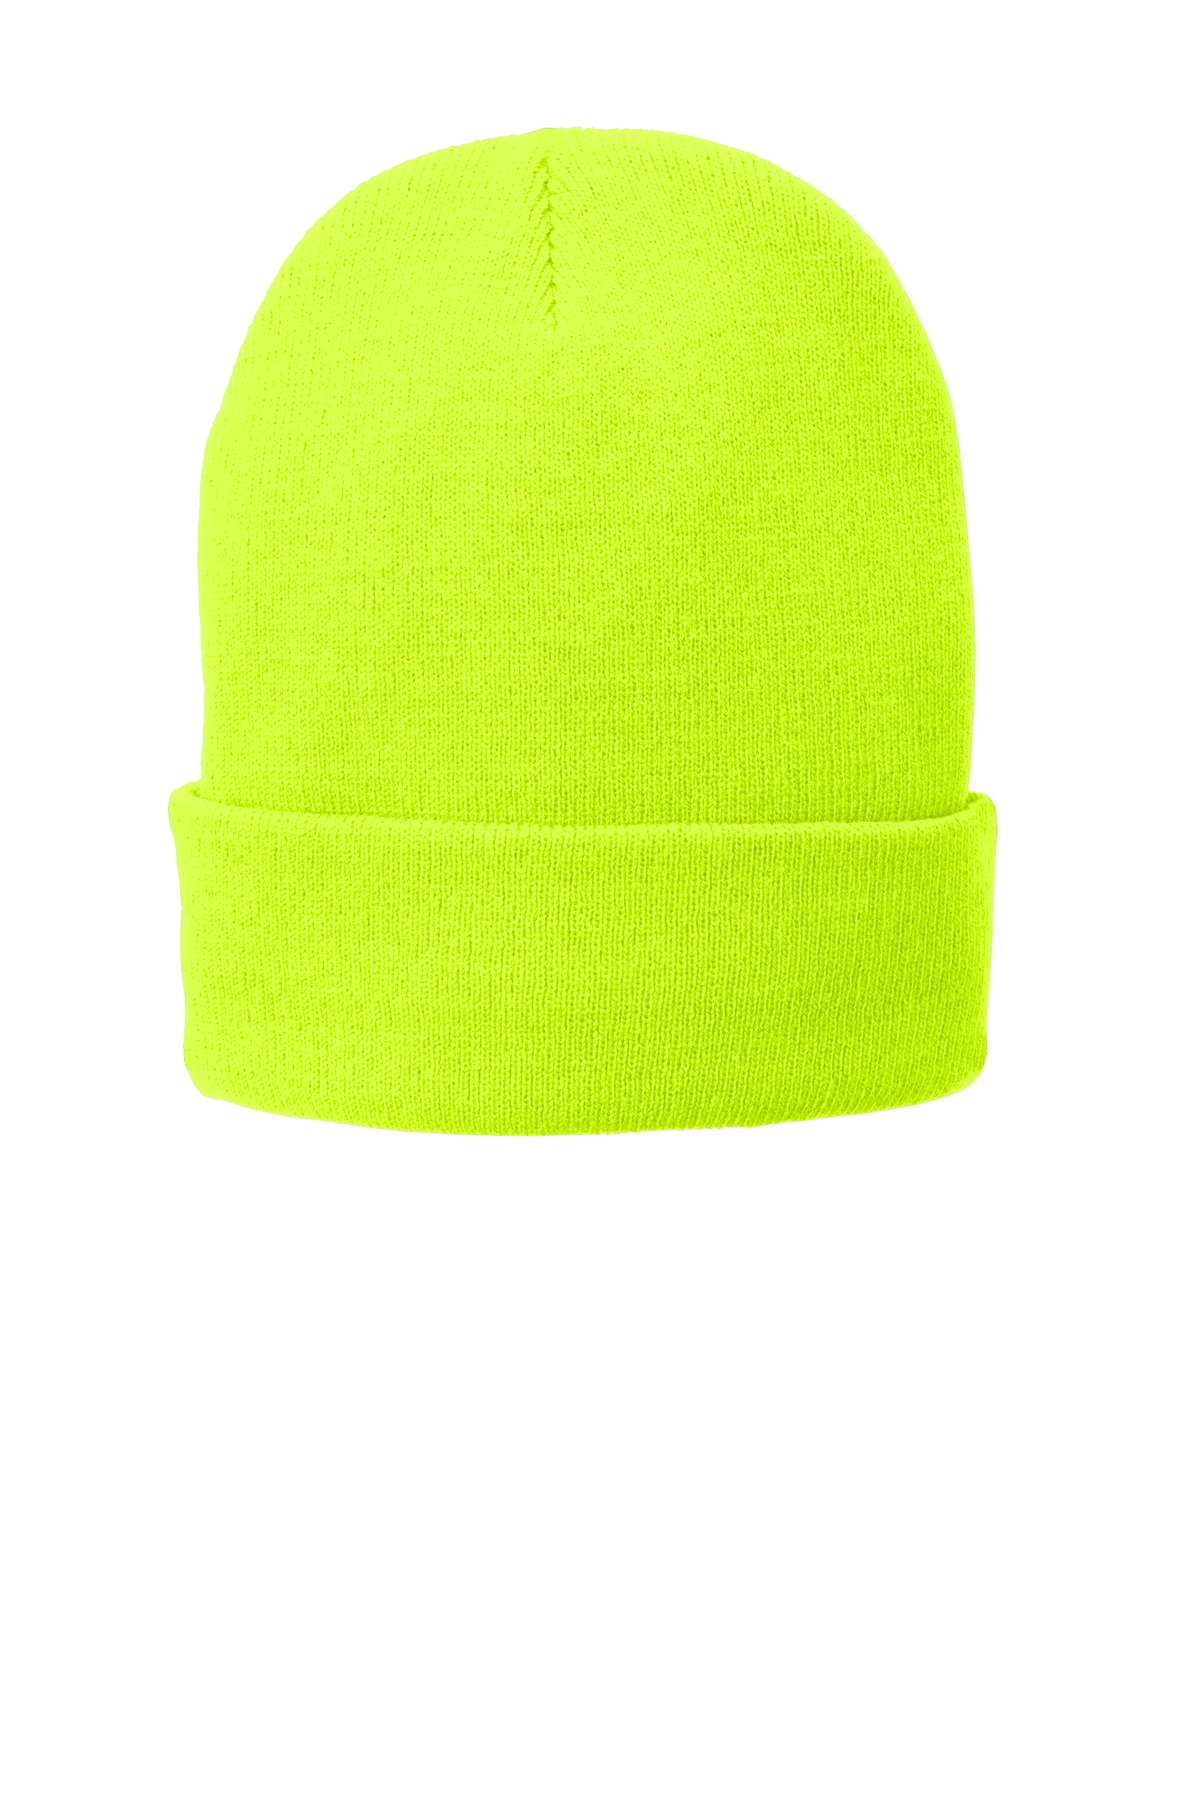 Port & Company ®  Fleece-Lined Knit Cap. CP90L - Neon Yellow